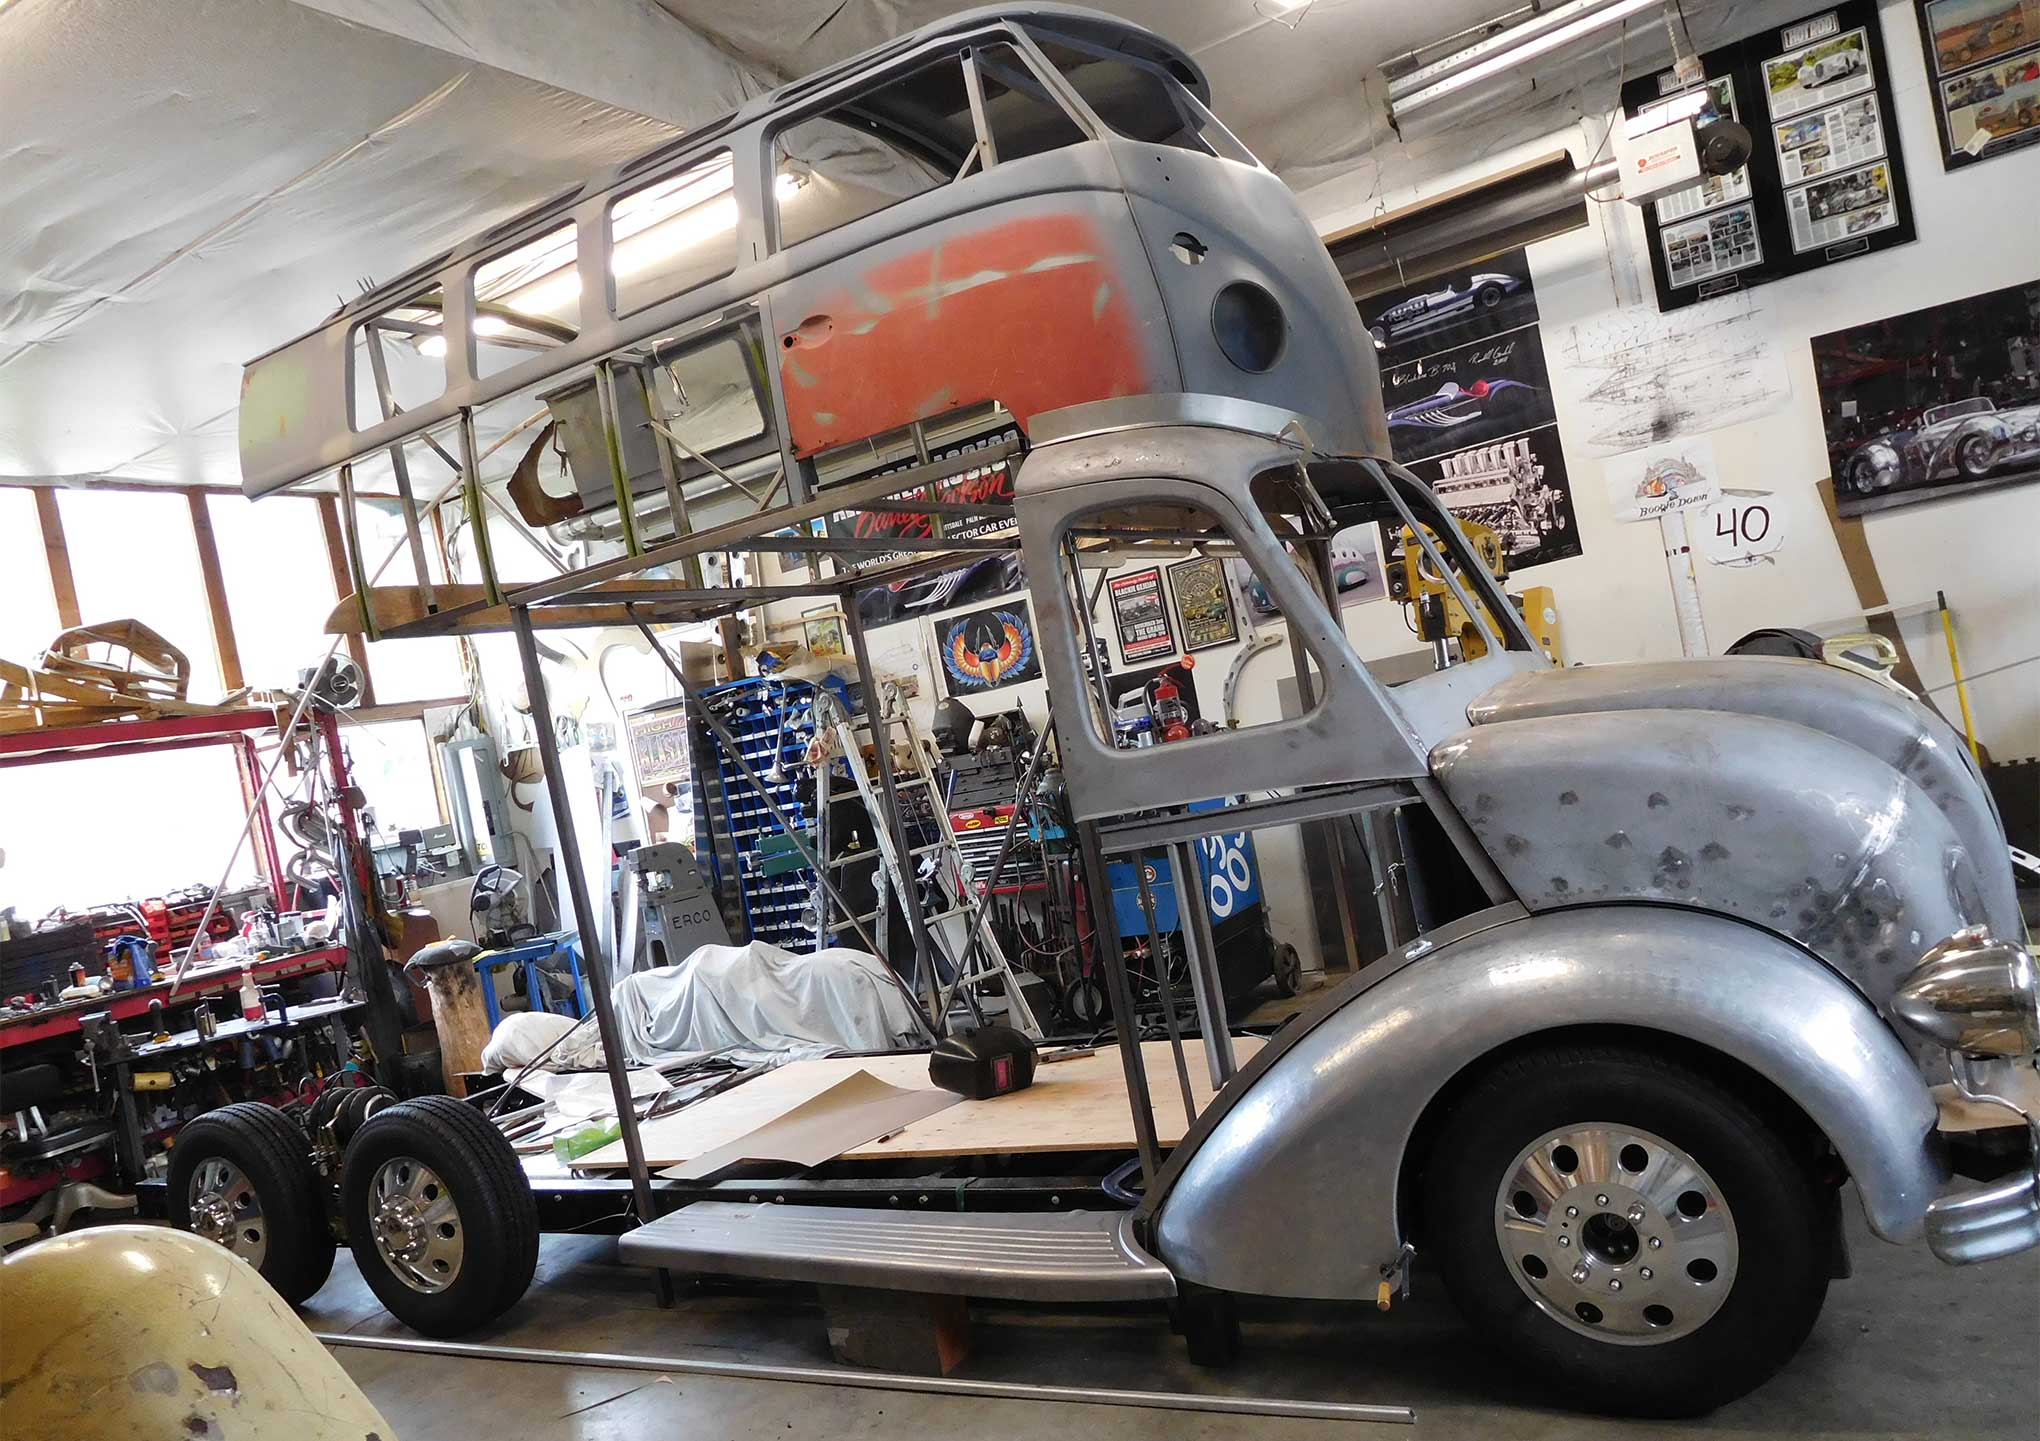 Randy Grubb's Magic Bus in progress